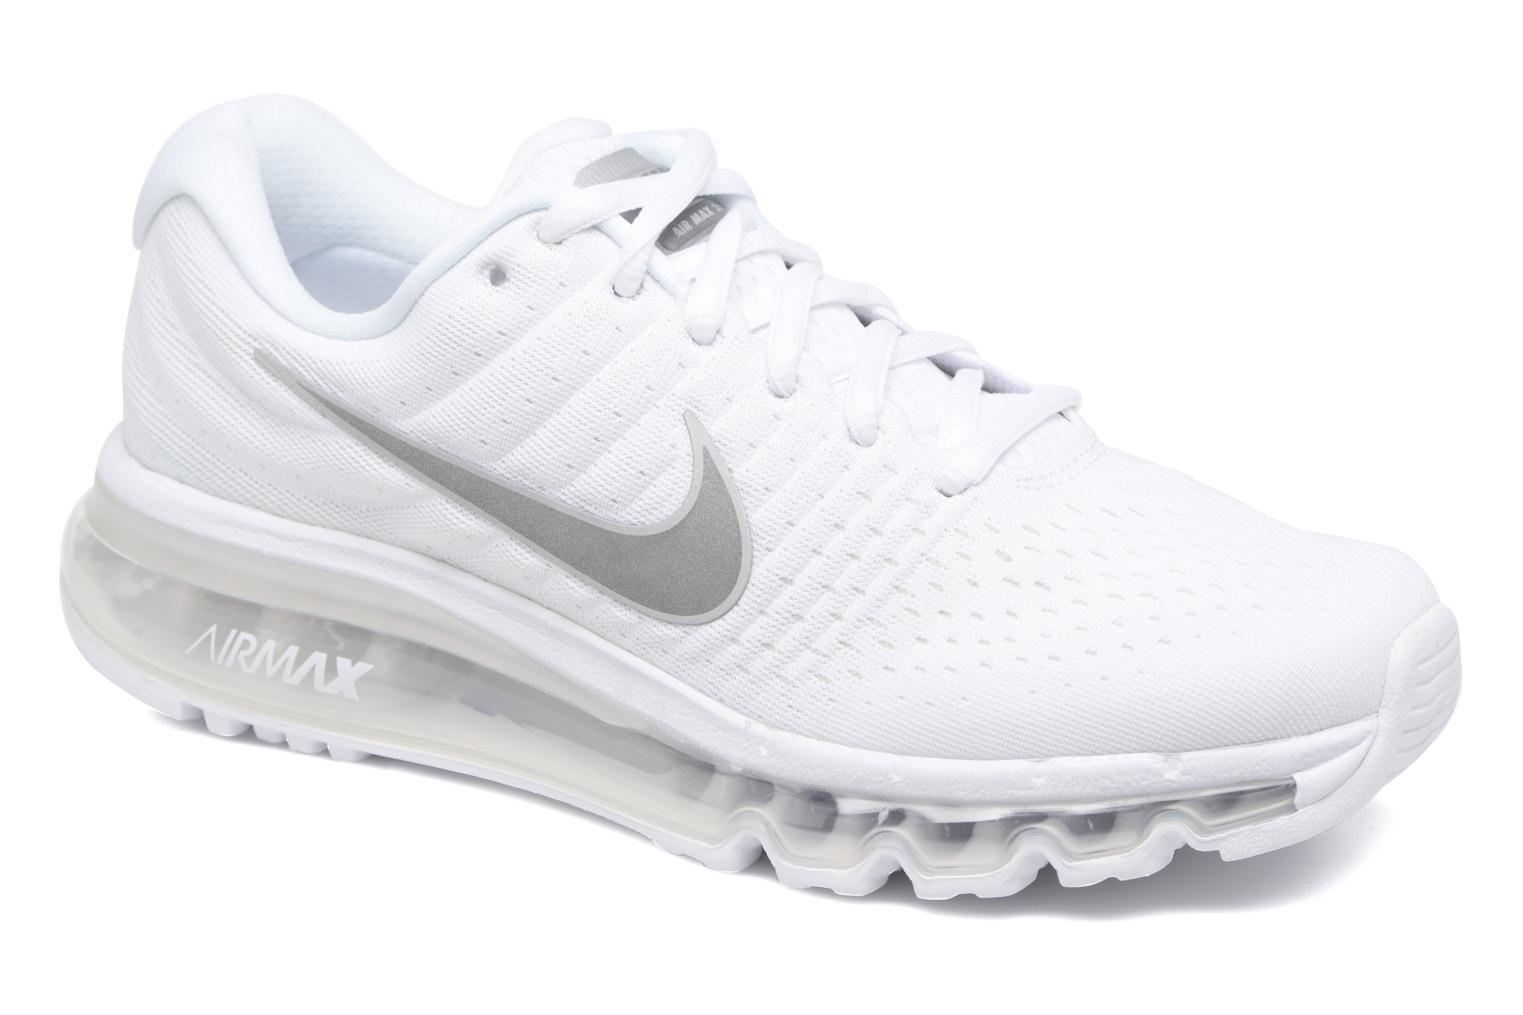 nike air max 2017 zwart en wit